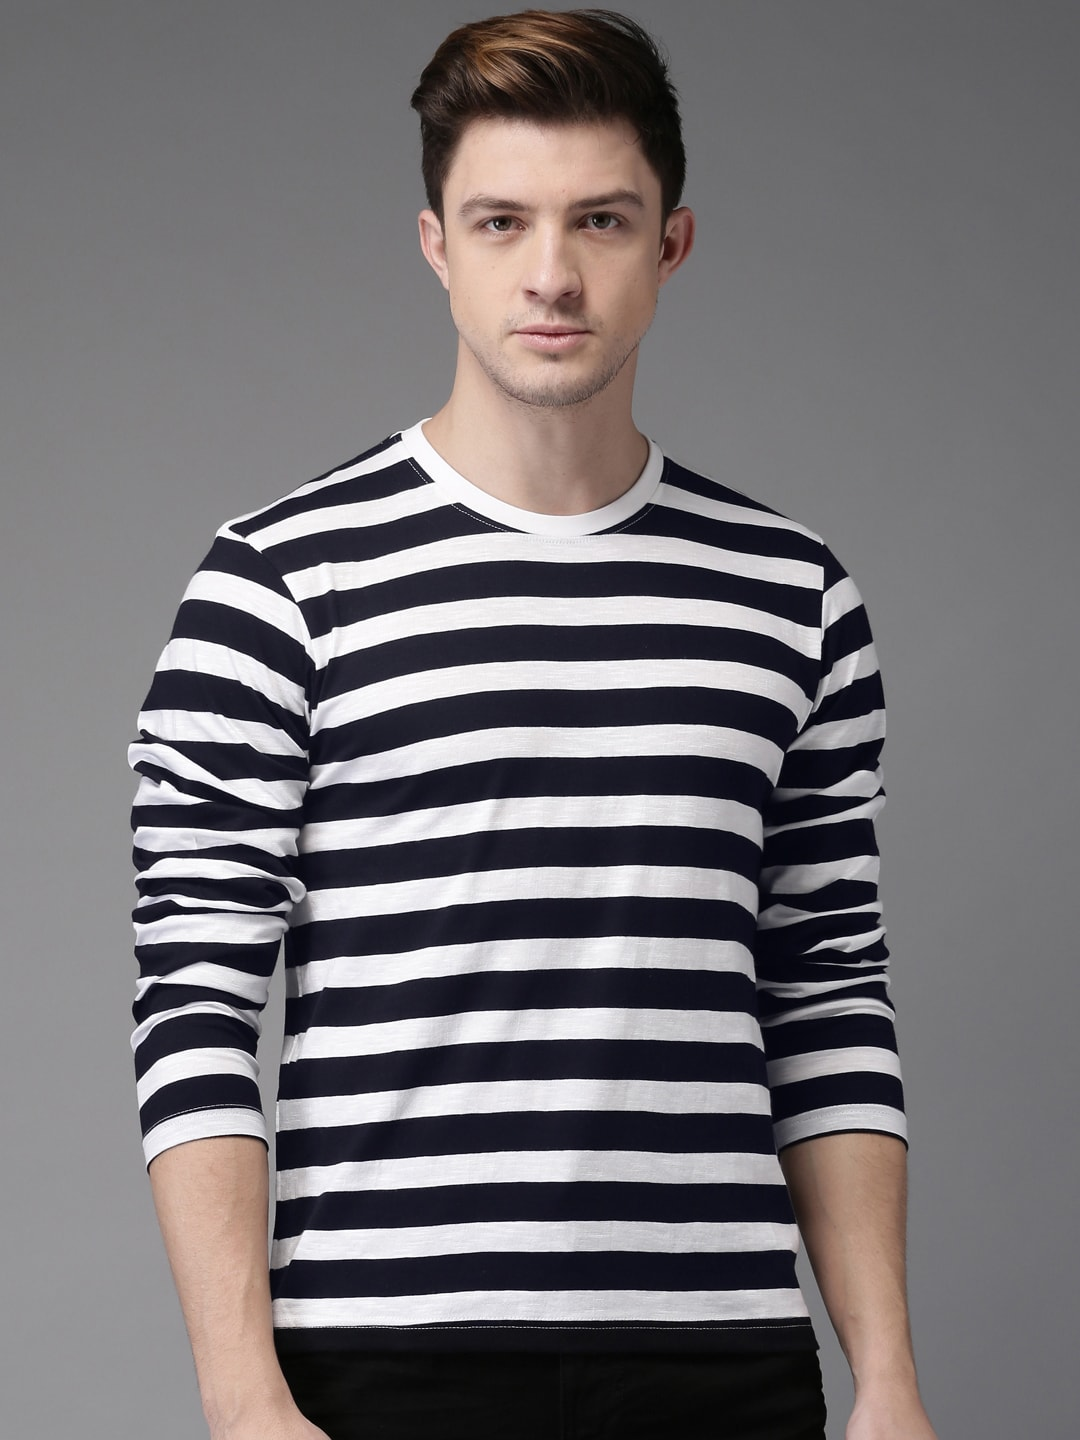 c64086cee08 Buy HERE NOW Men Navy Blue   White Striped Round Neck T Shirt - Tshirts for  Men 2383691